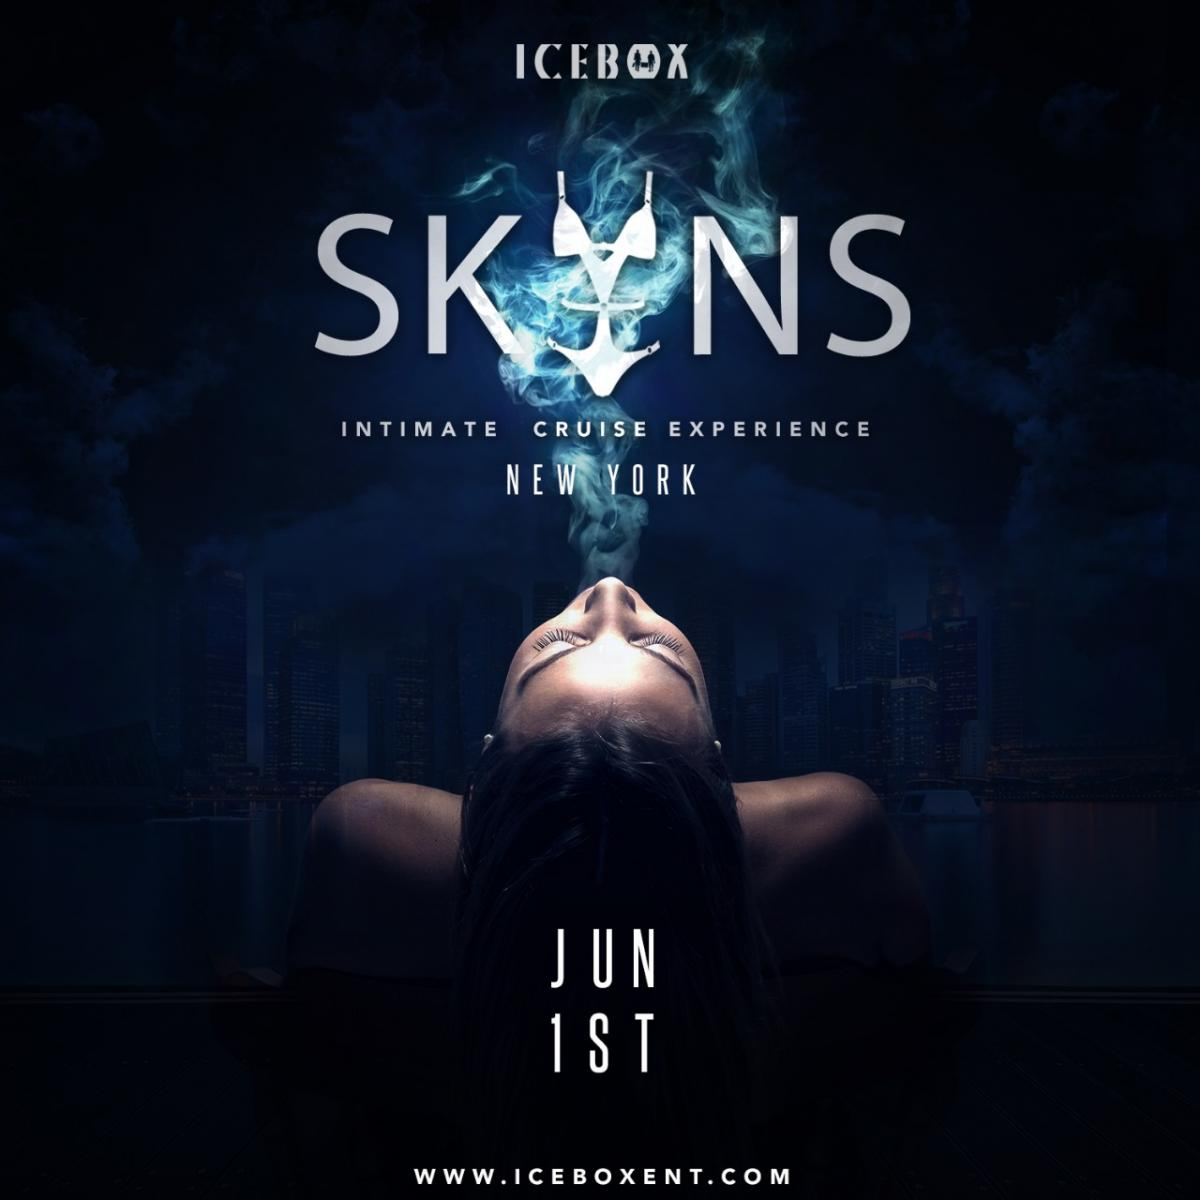 SKINS flyer or graphic.